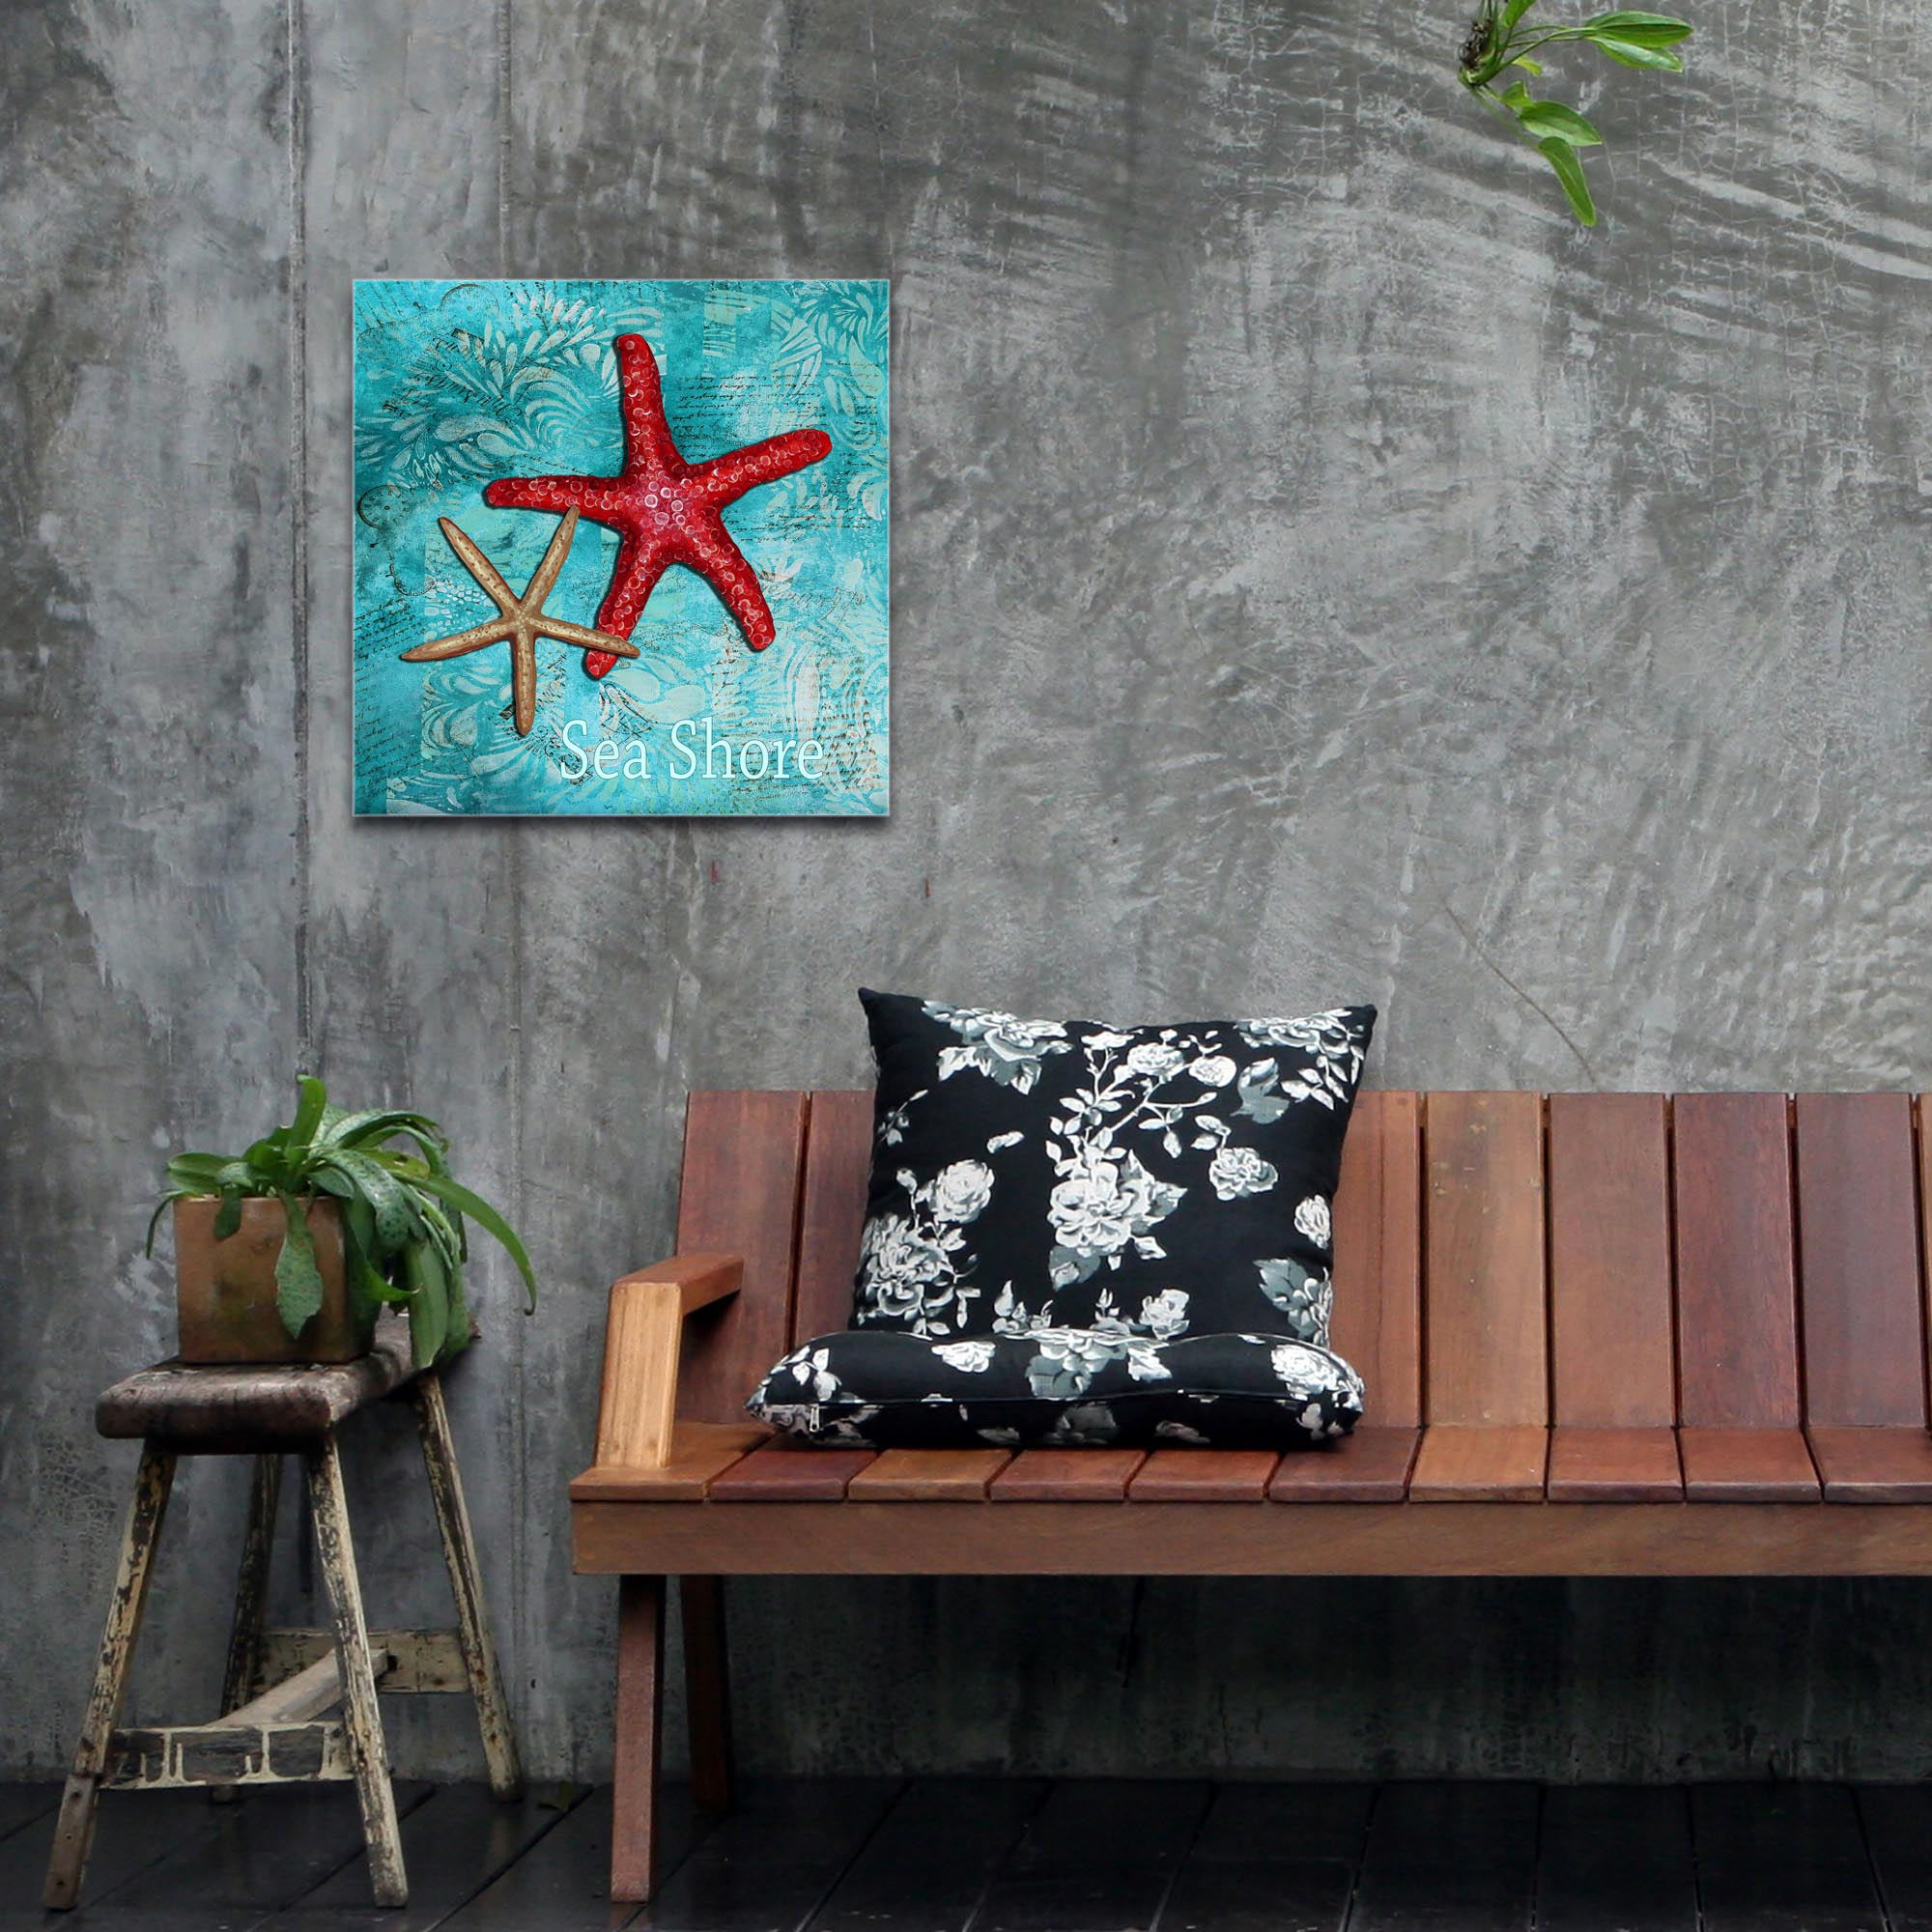 Starfish Wall Art 'Sea Shore' - Coastal Decor on Metal or Acrylic - Lifestyle View 2